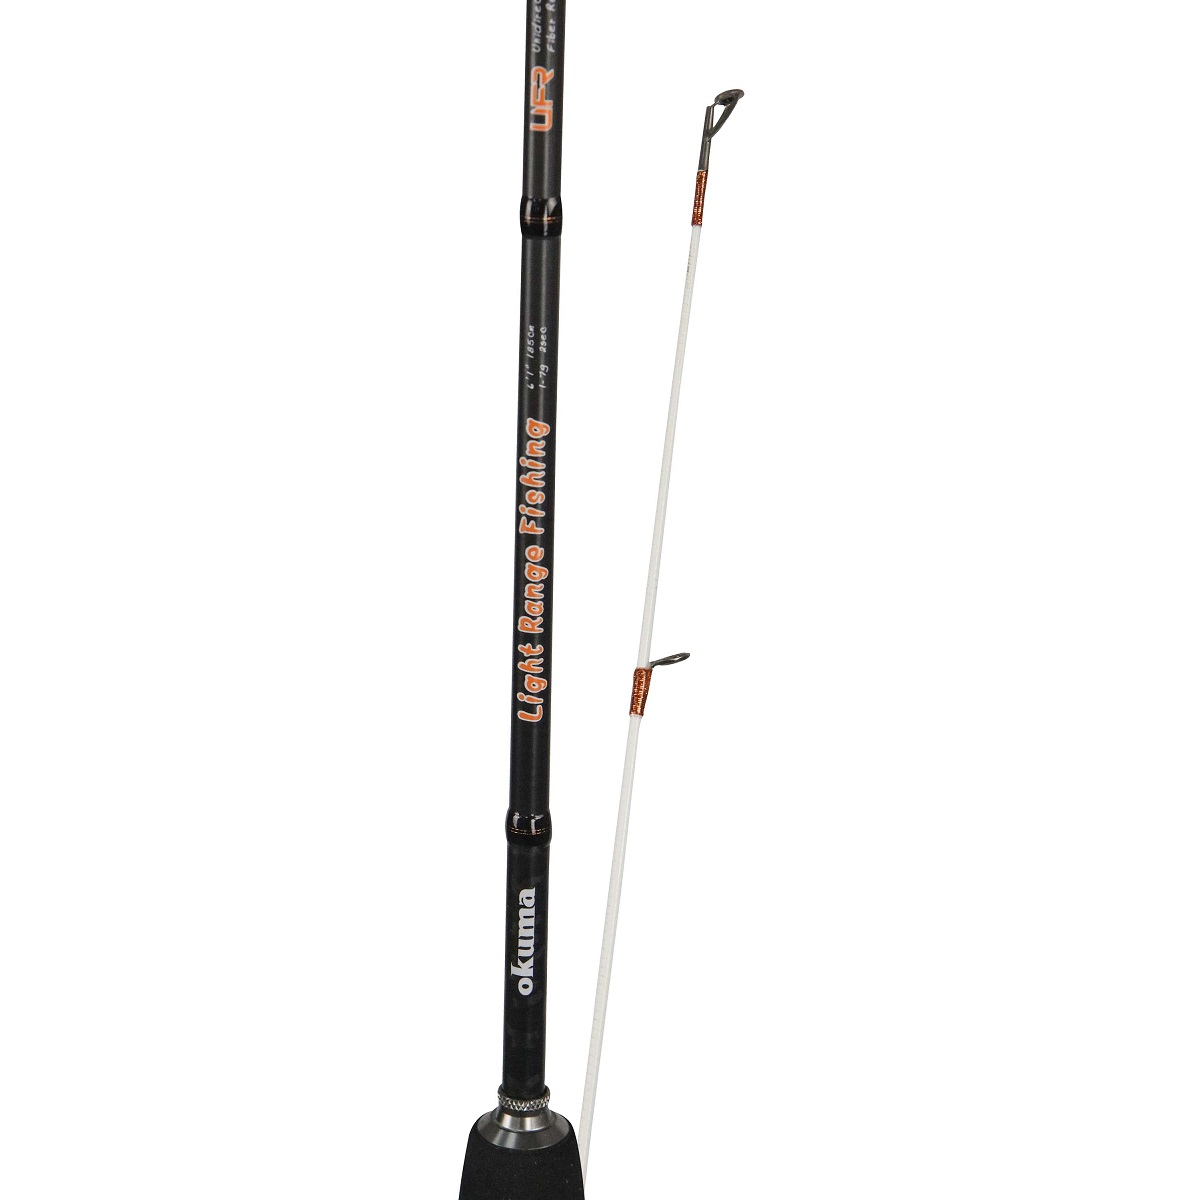 Fishing Rod gama leve (2018 NOVO) - Fishing Rod Gama Clara